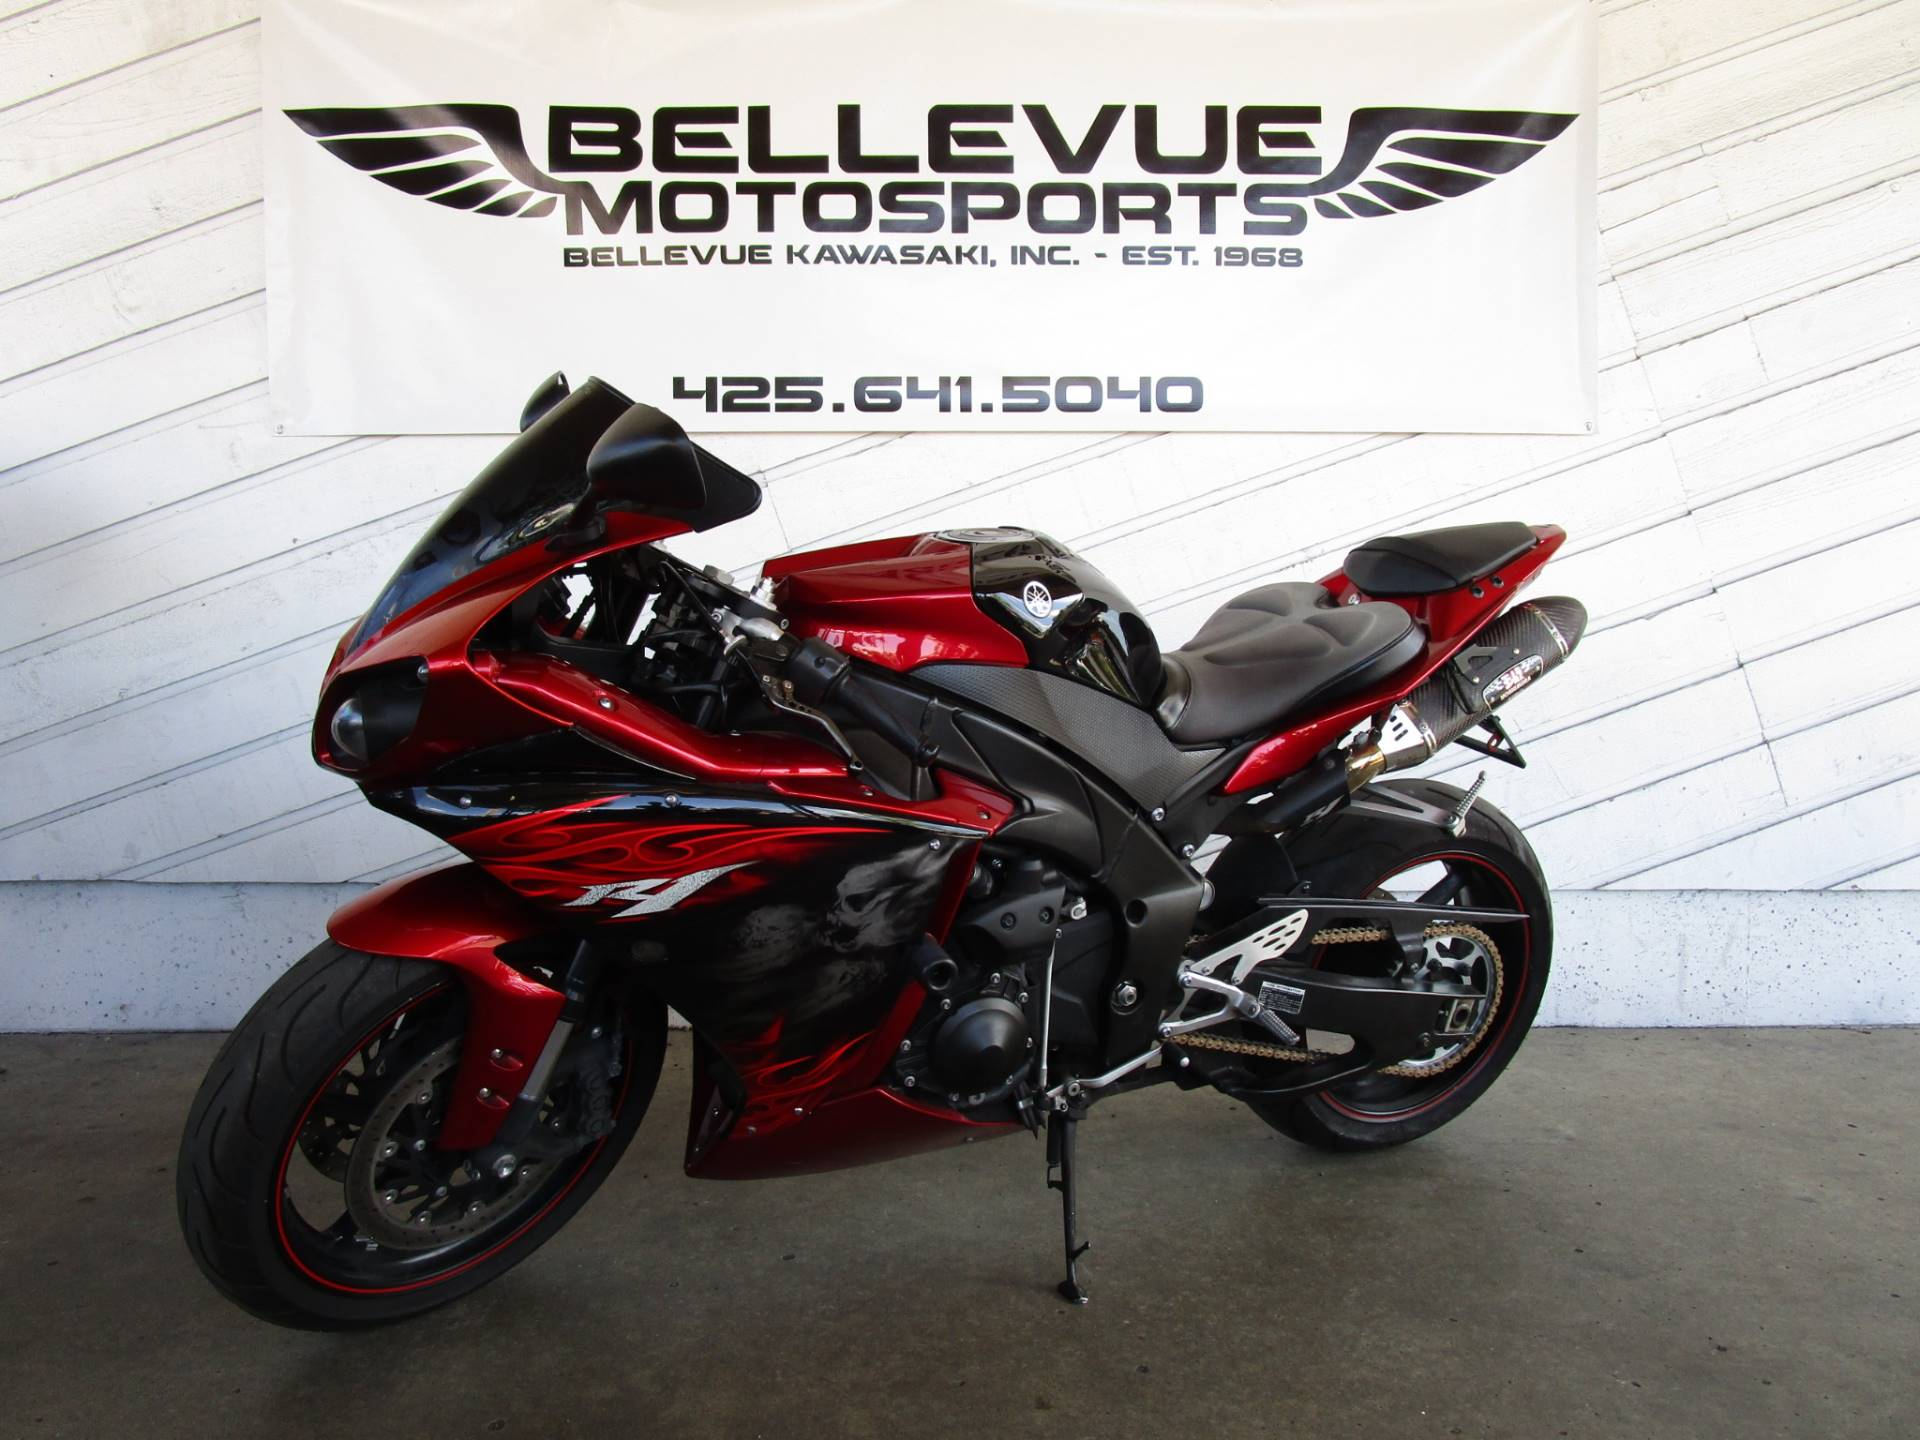 2011 Yamaha YZF-R1 in Bellevue, Washington - Photo 1